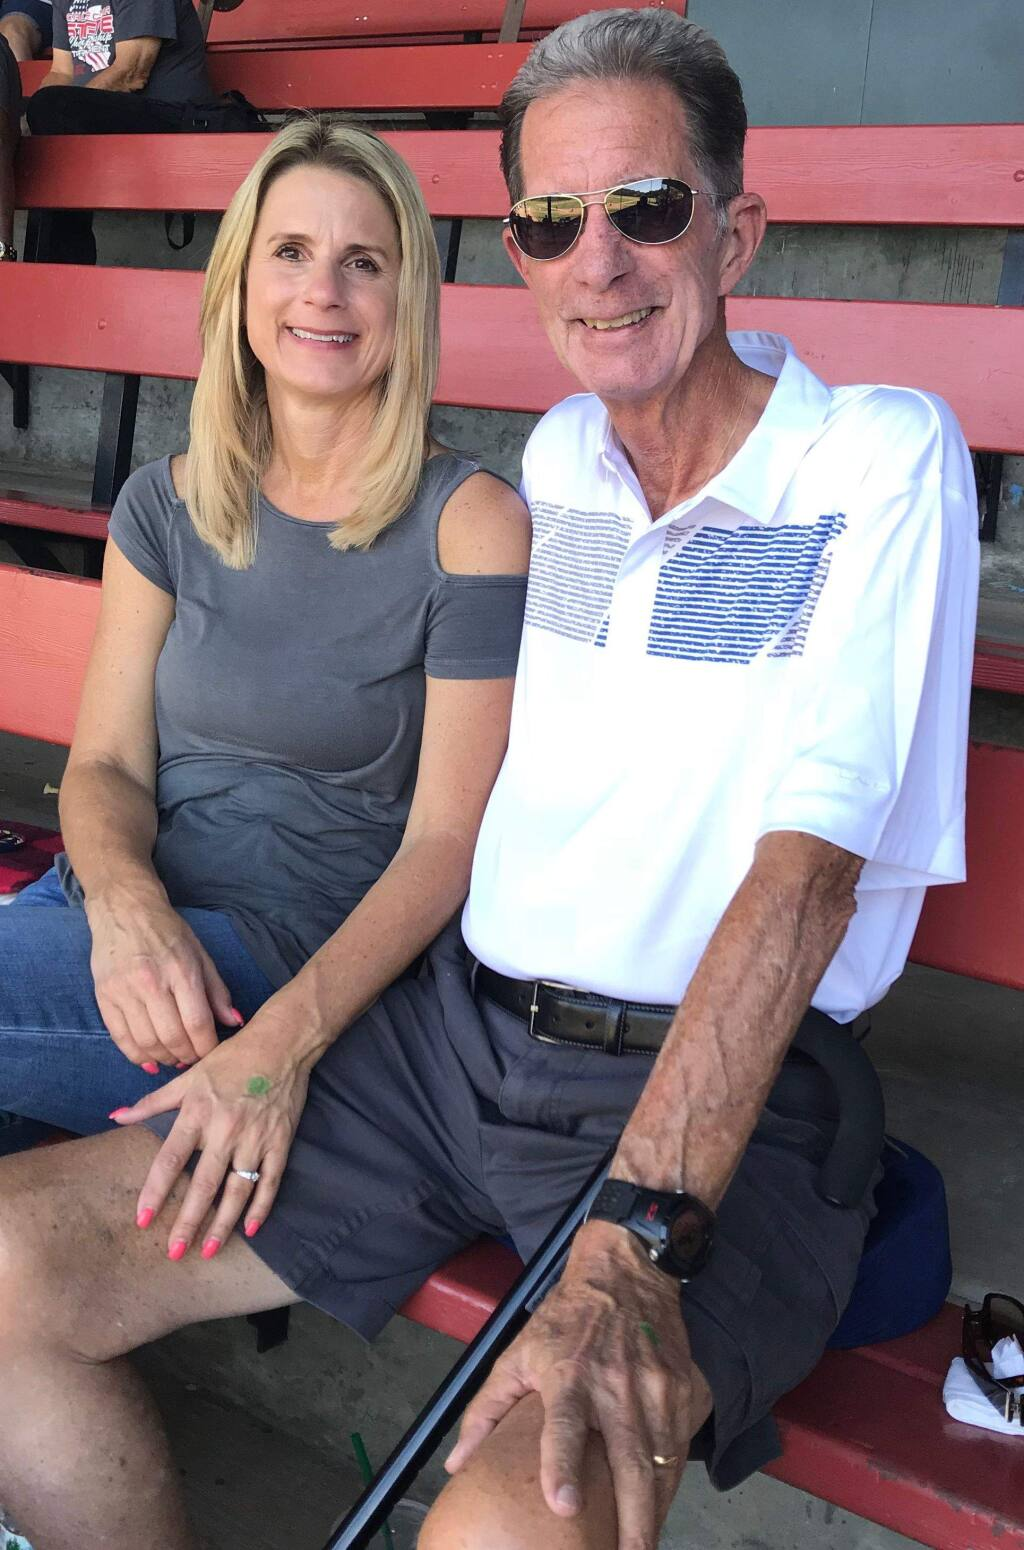 Pete Dardis and his wife, Marina, sit at a baseball game in Yountville on July 26. (Photo from Dardis family)